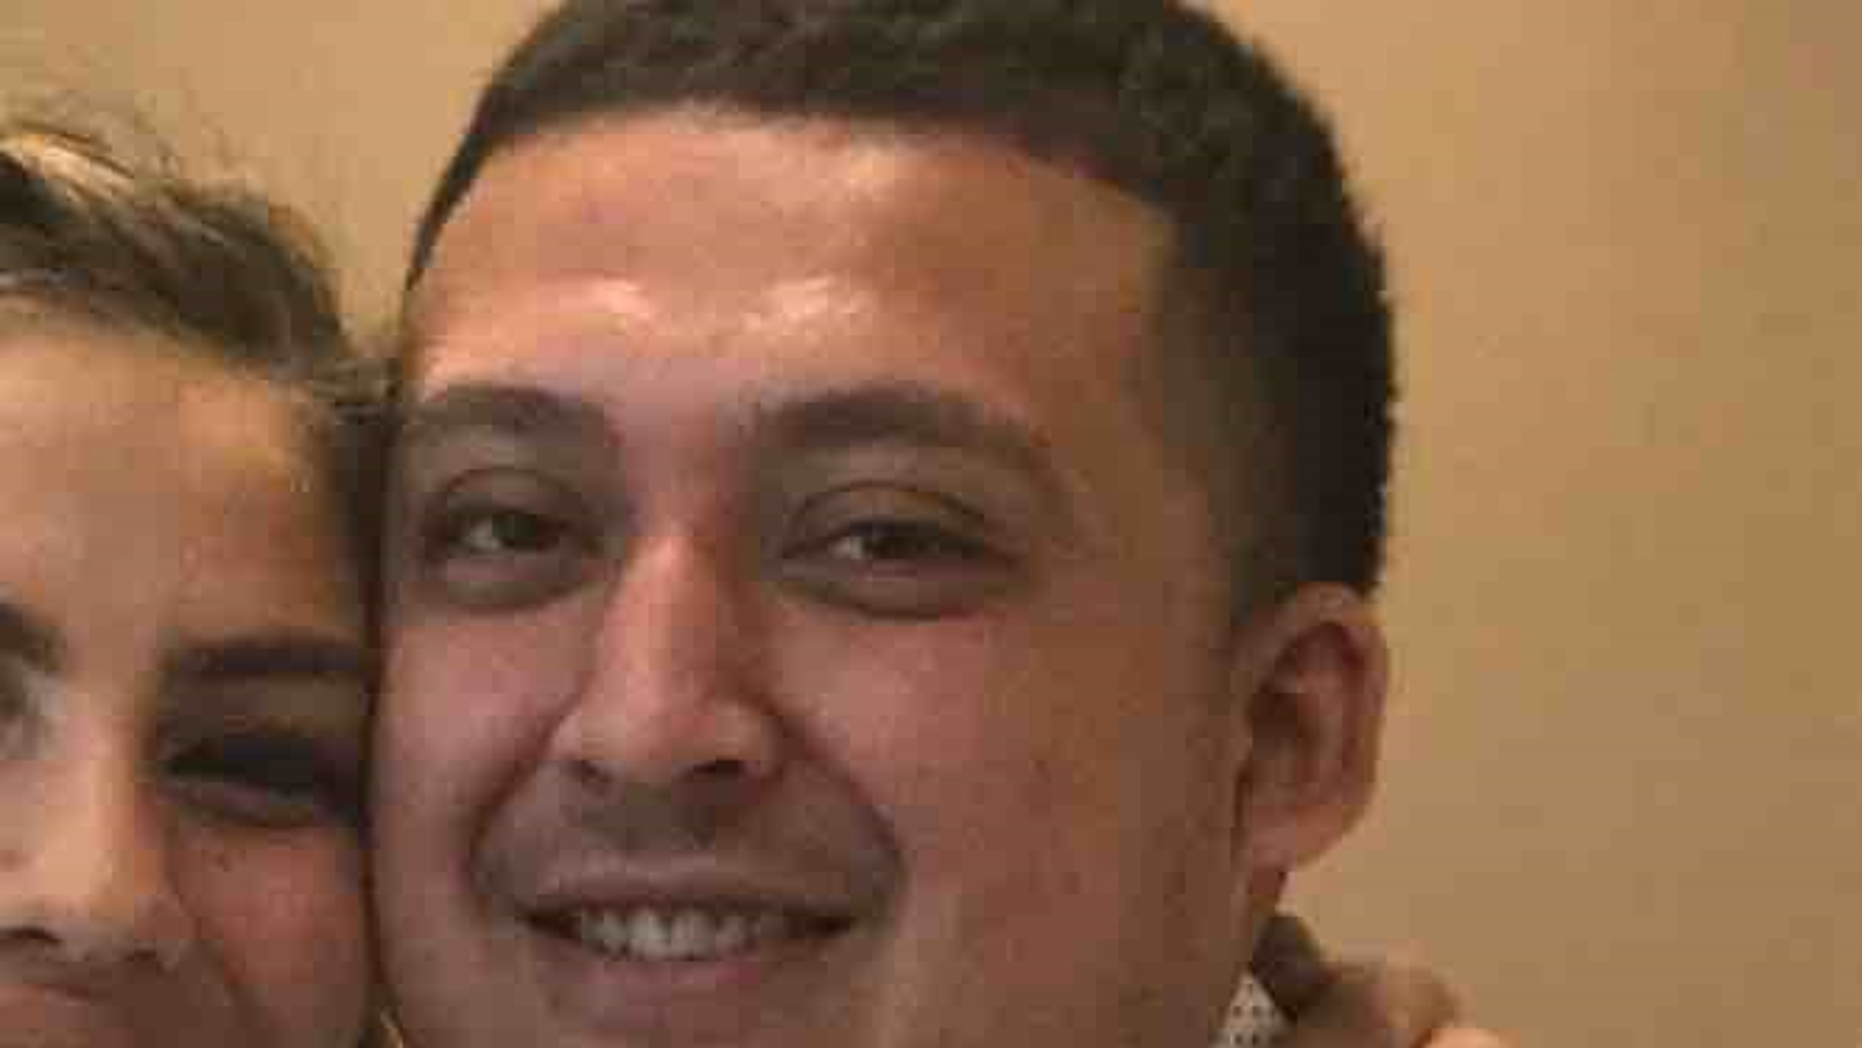 A boulder that killed 23-year-old Christopher Lopez was intentionally dropped onto a roadway, authorities say.